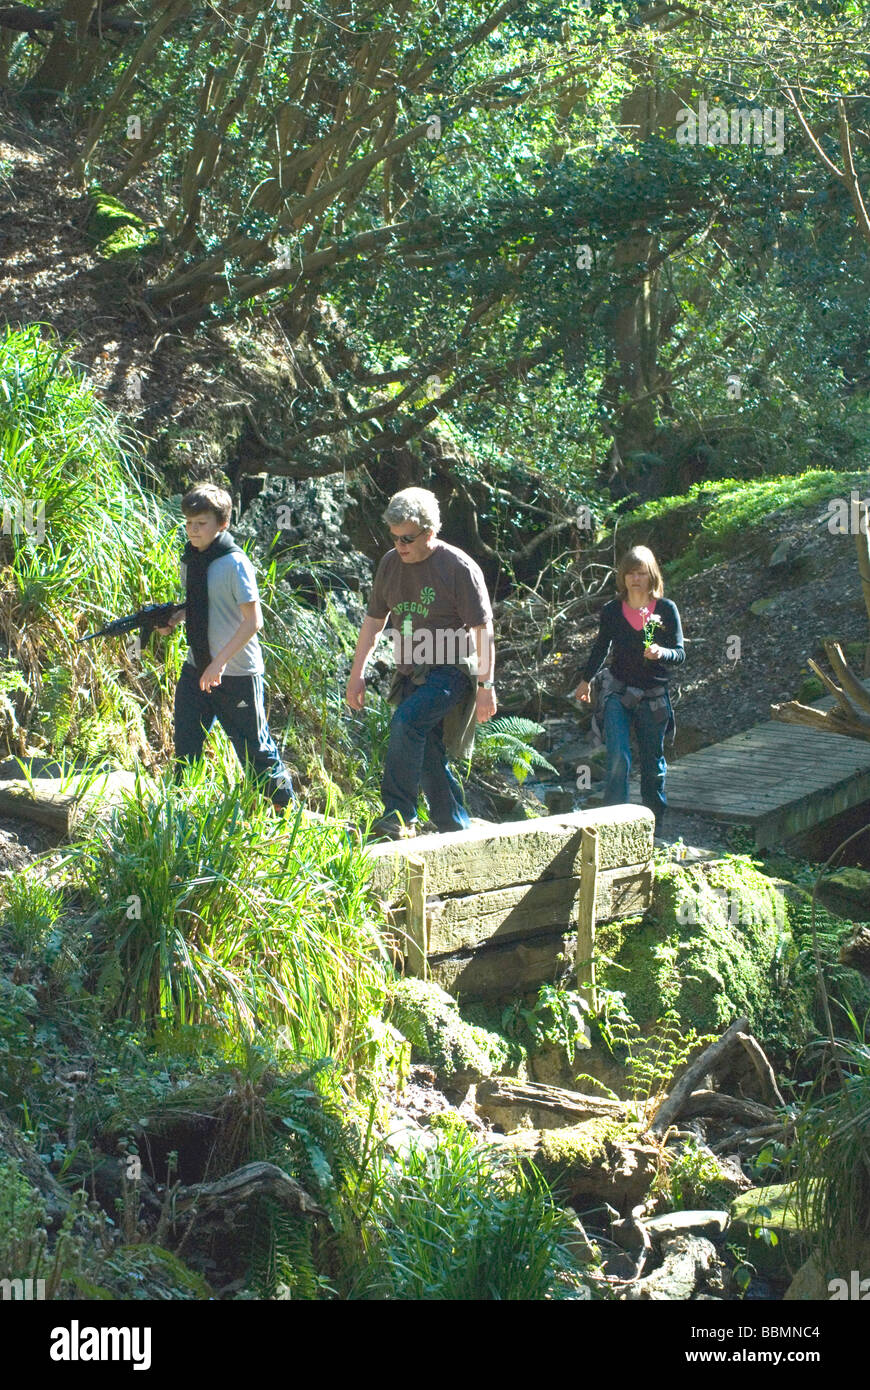 Family walking in Ecclesbourne Glen Hastings Country Park Hastings East Sussex England Stock Photo